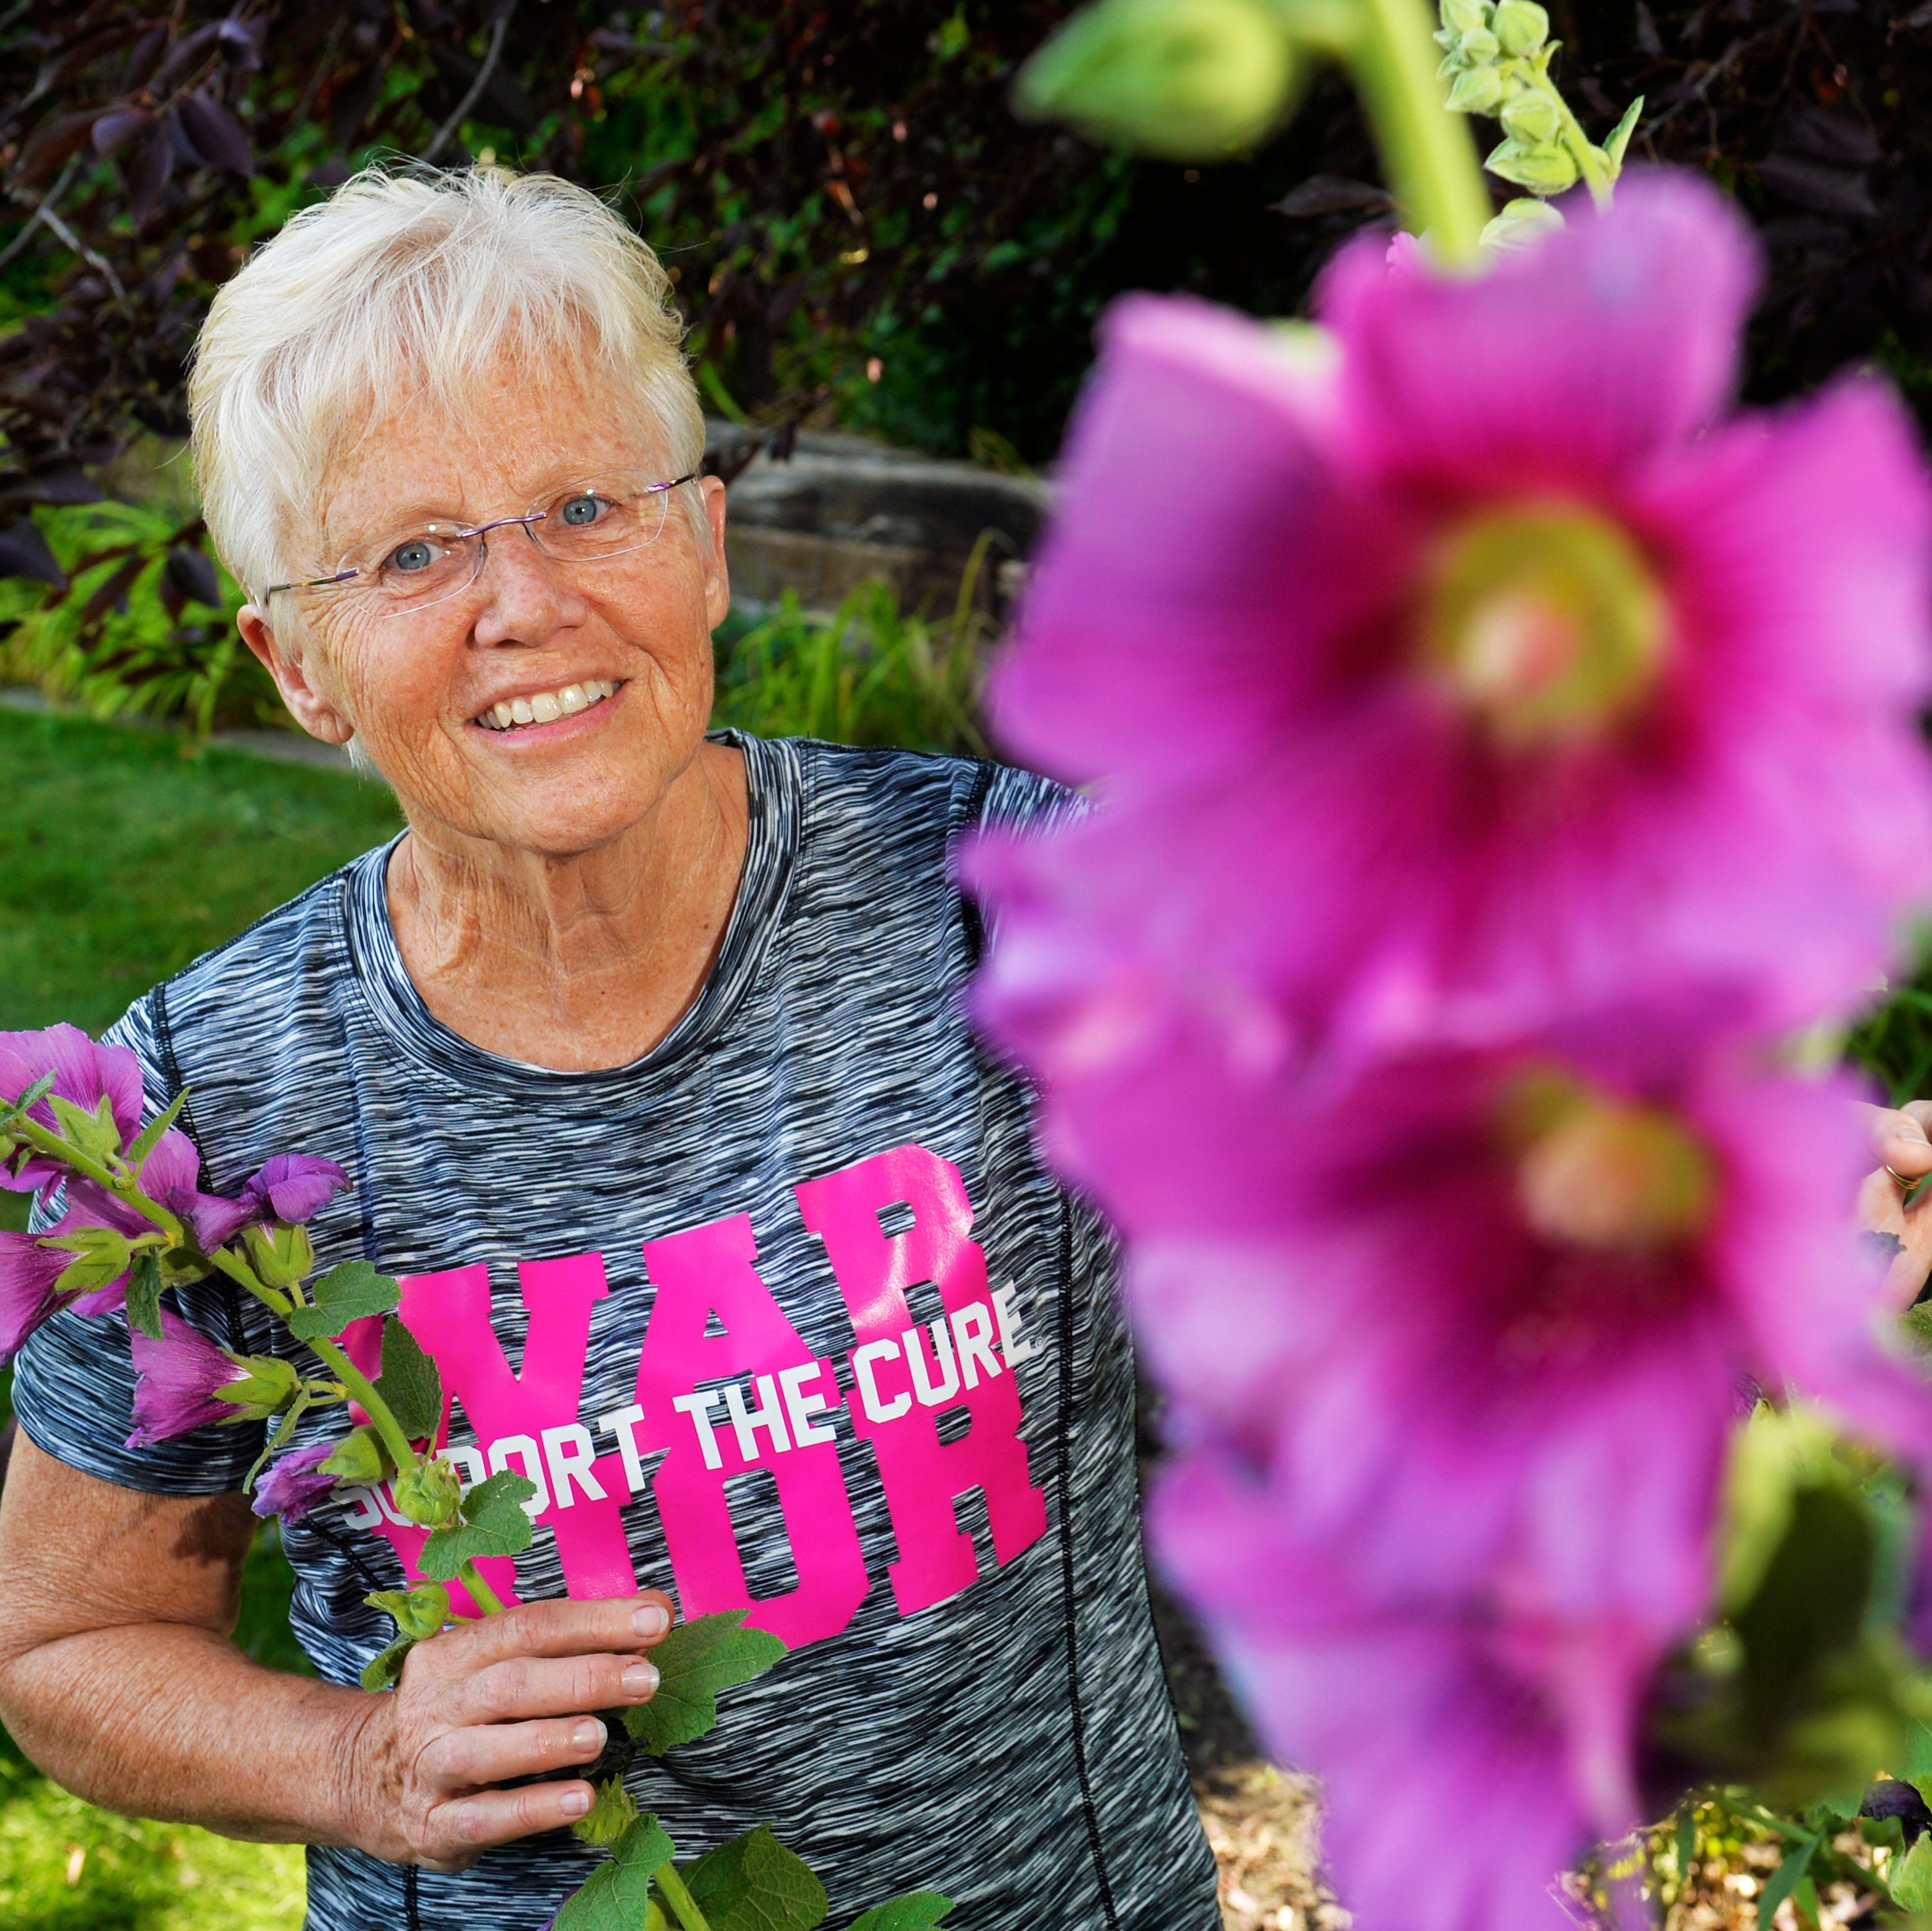 Battling cancer with a new diet, new lifestyle is Great Falls survivor's game plan